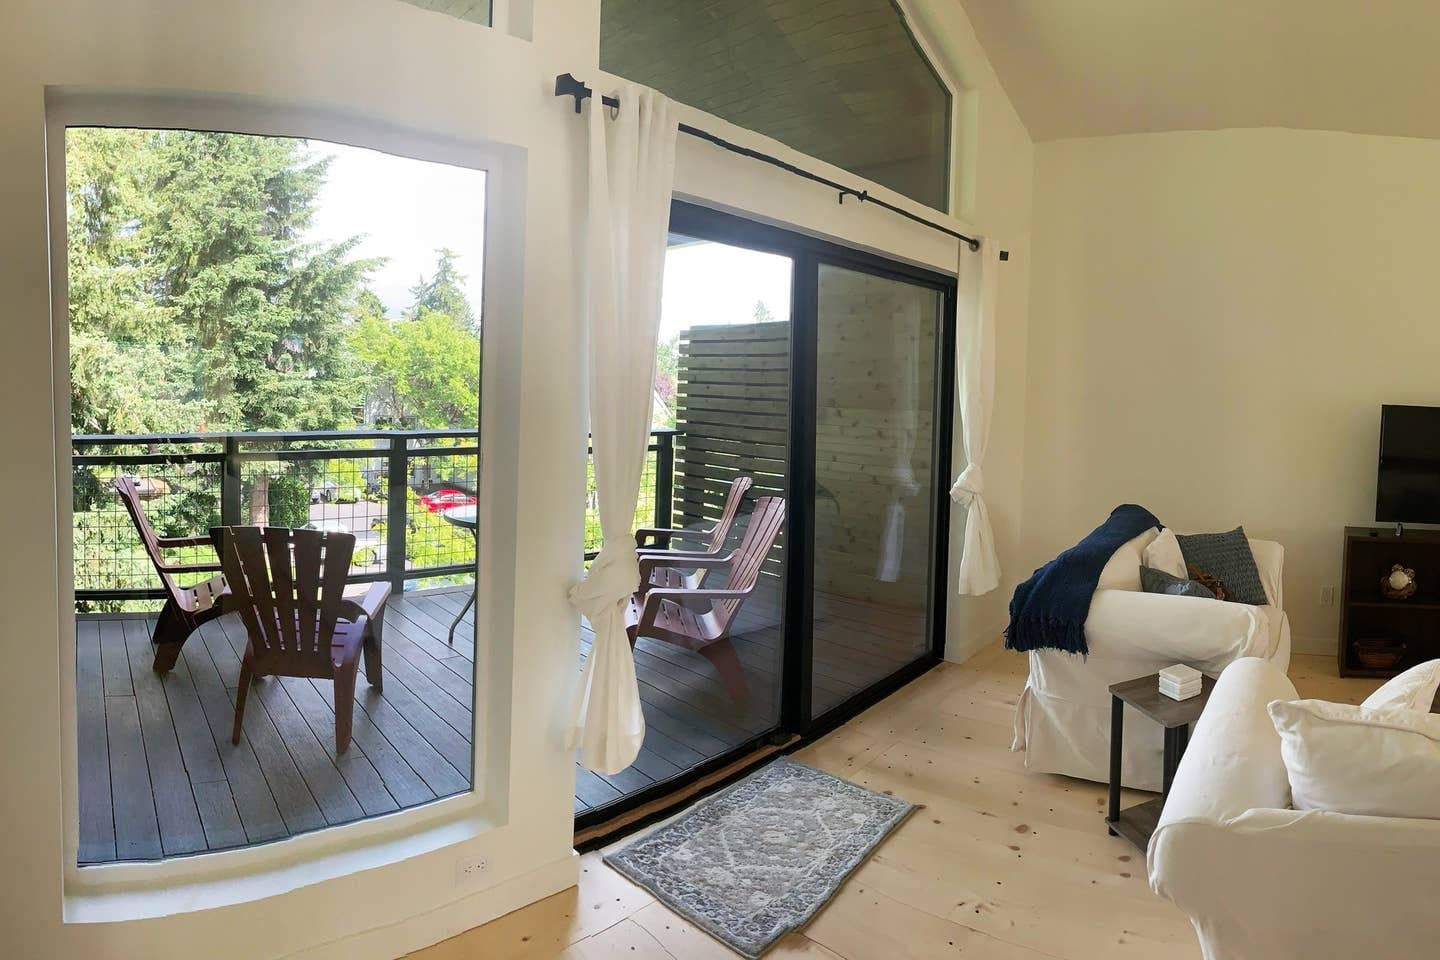 The lovely deck offers cool evenings that are so nice and private.